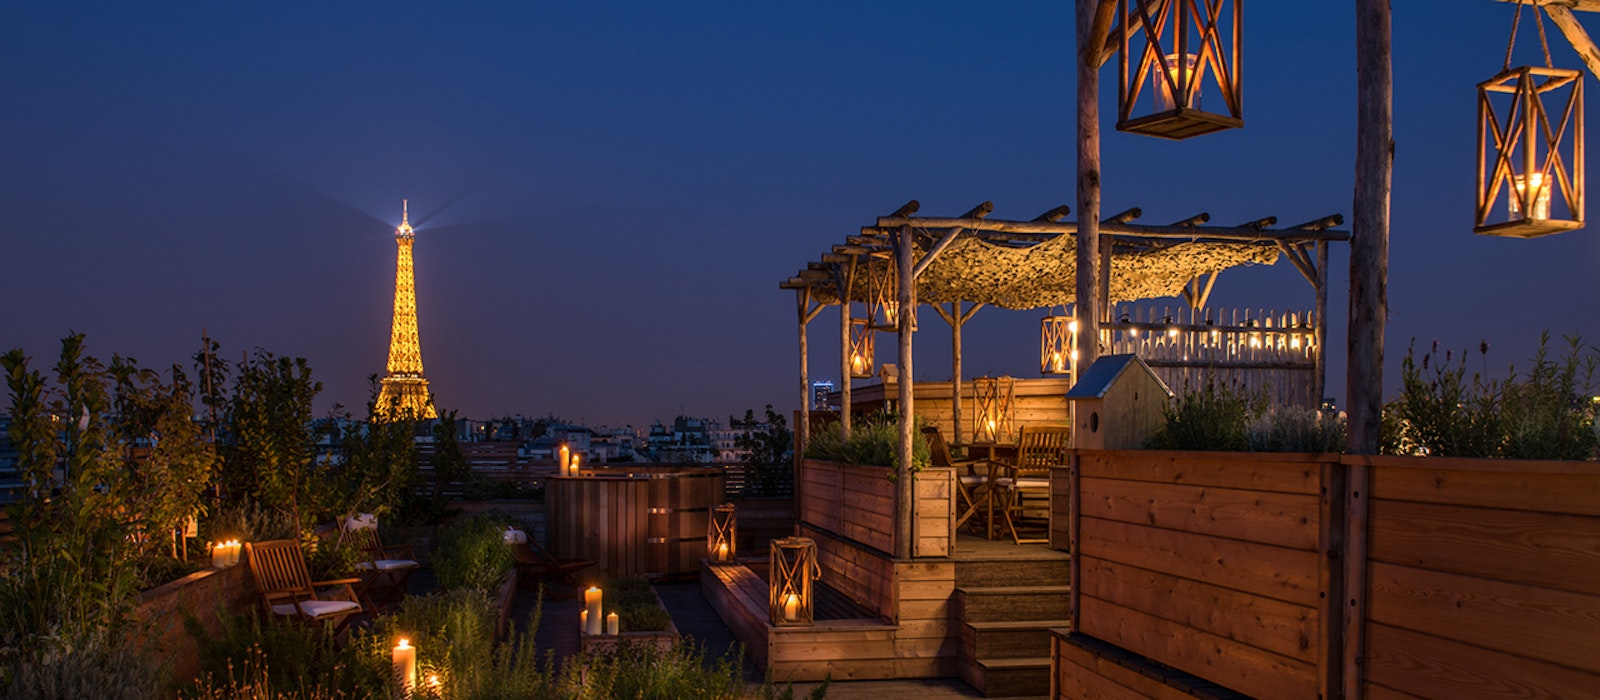 The view from the rooftop kitchen garden at the Brach Paris. (Don't worry, there's a terrace bar up there, too.)